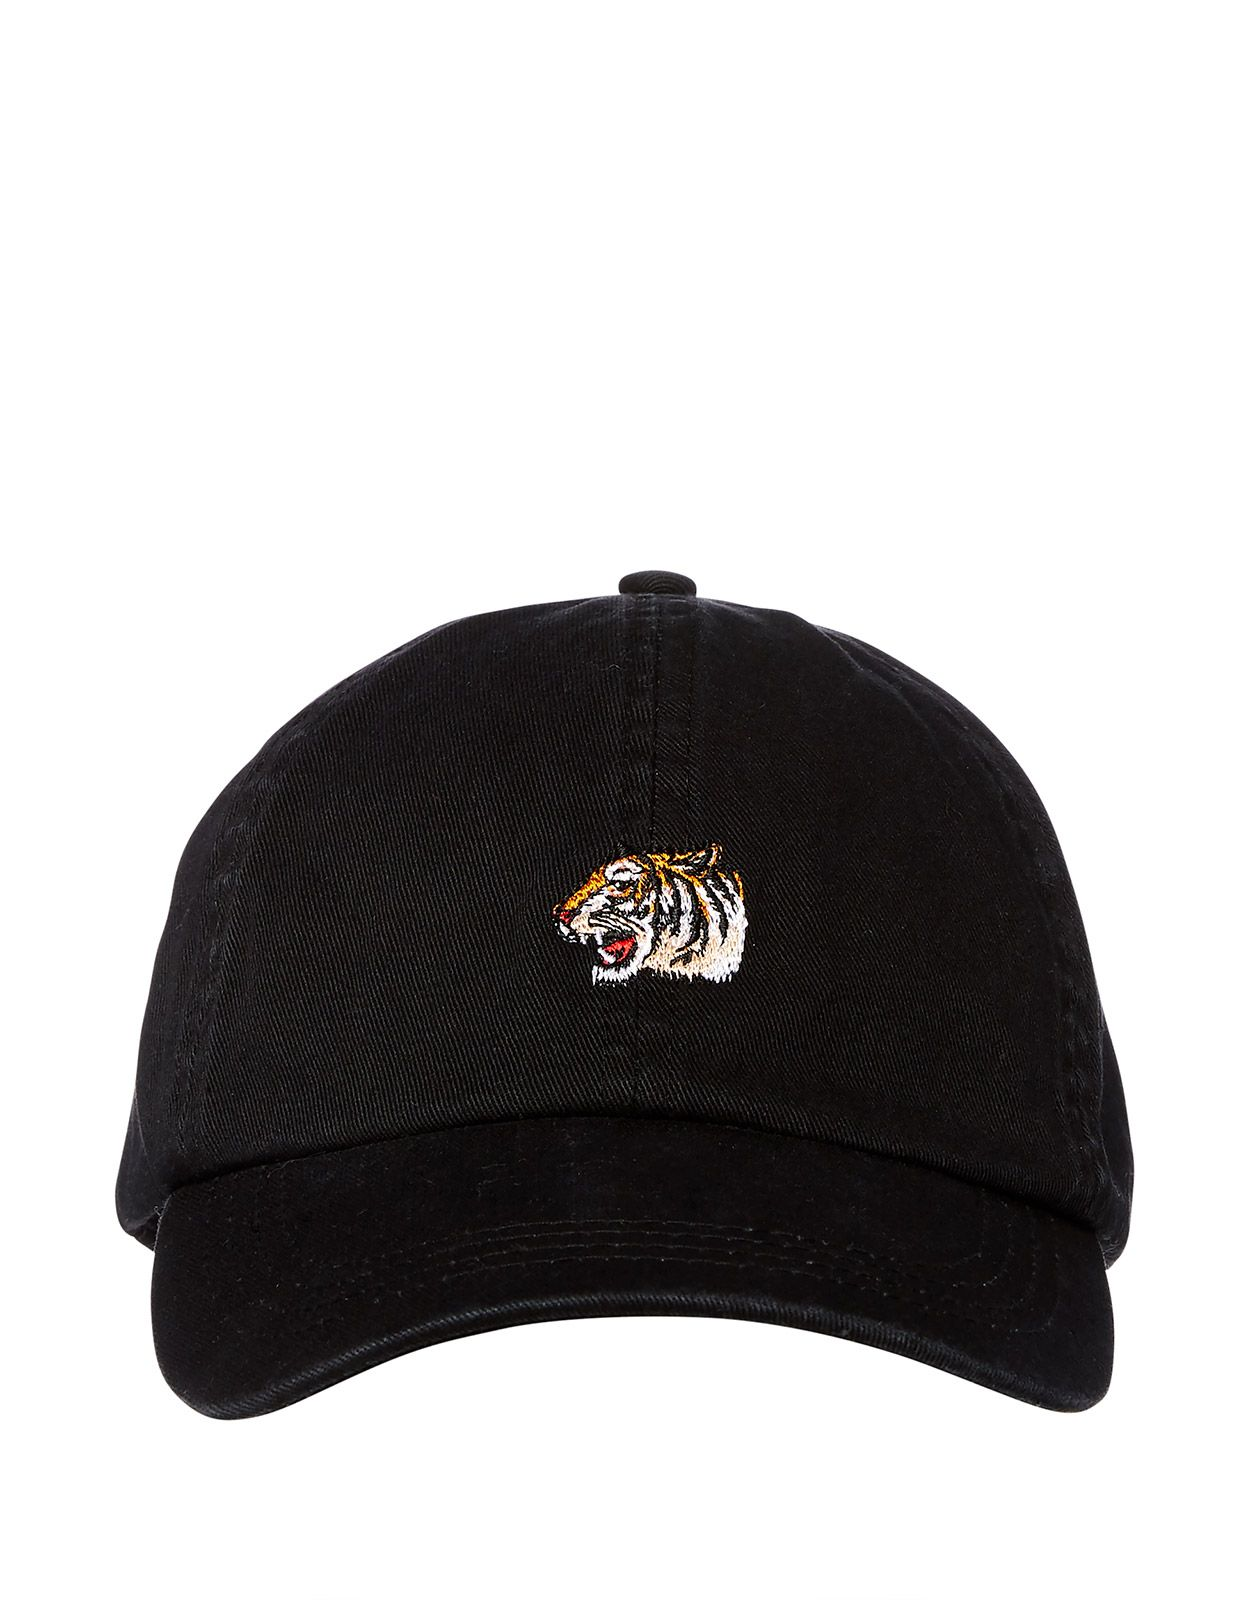 315815cce6a14 Image for Embroidered Baseball Cap from Jay Jays